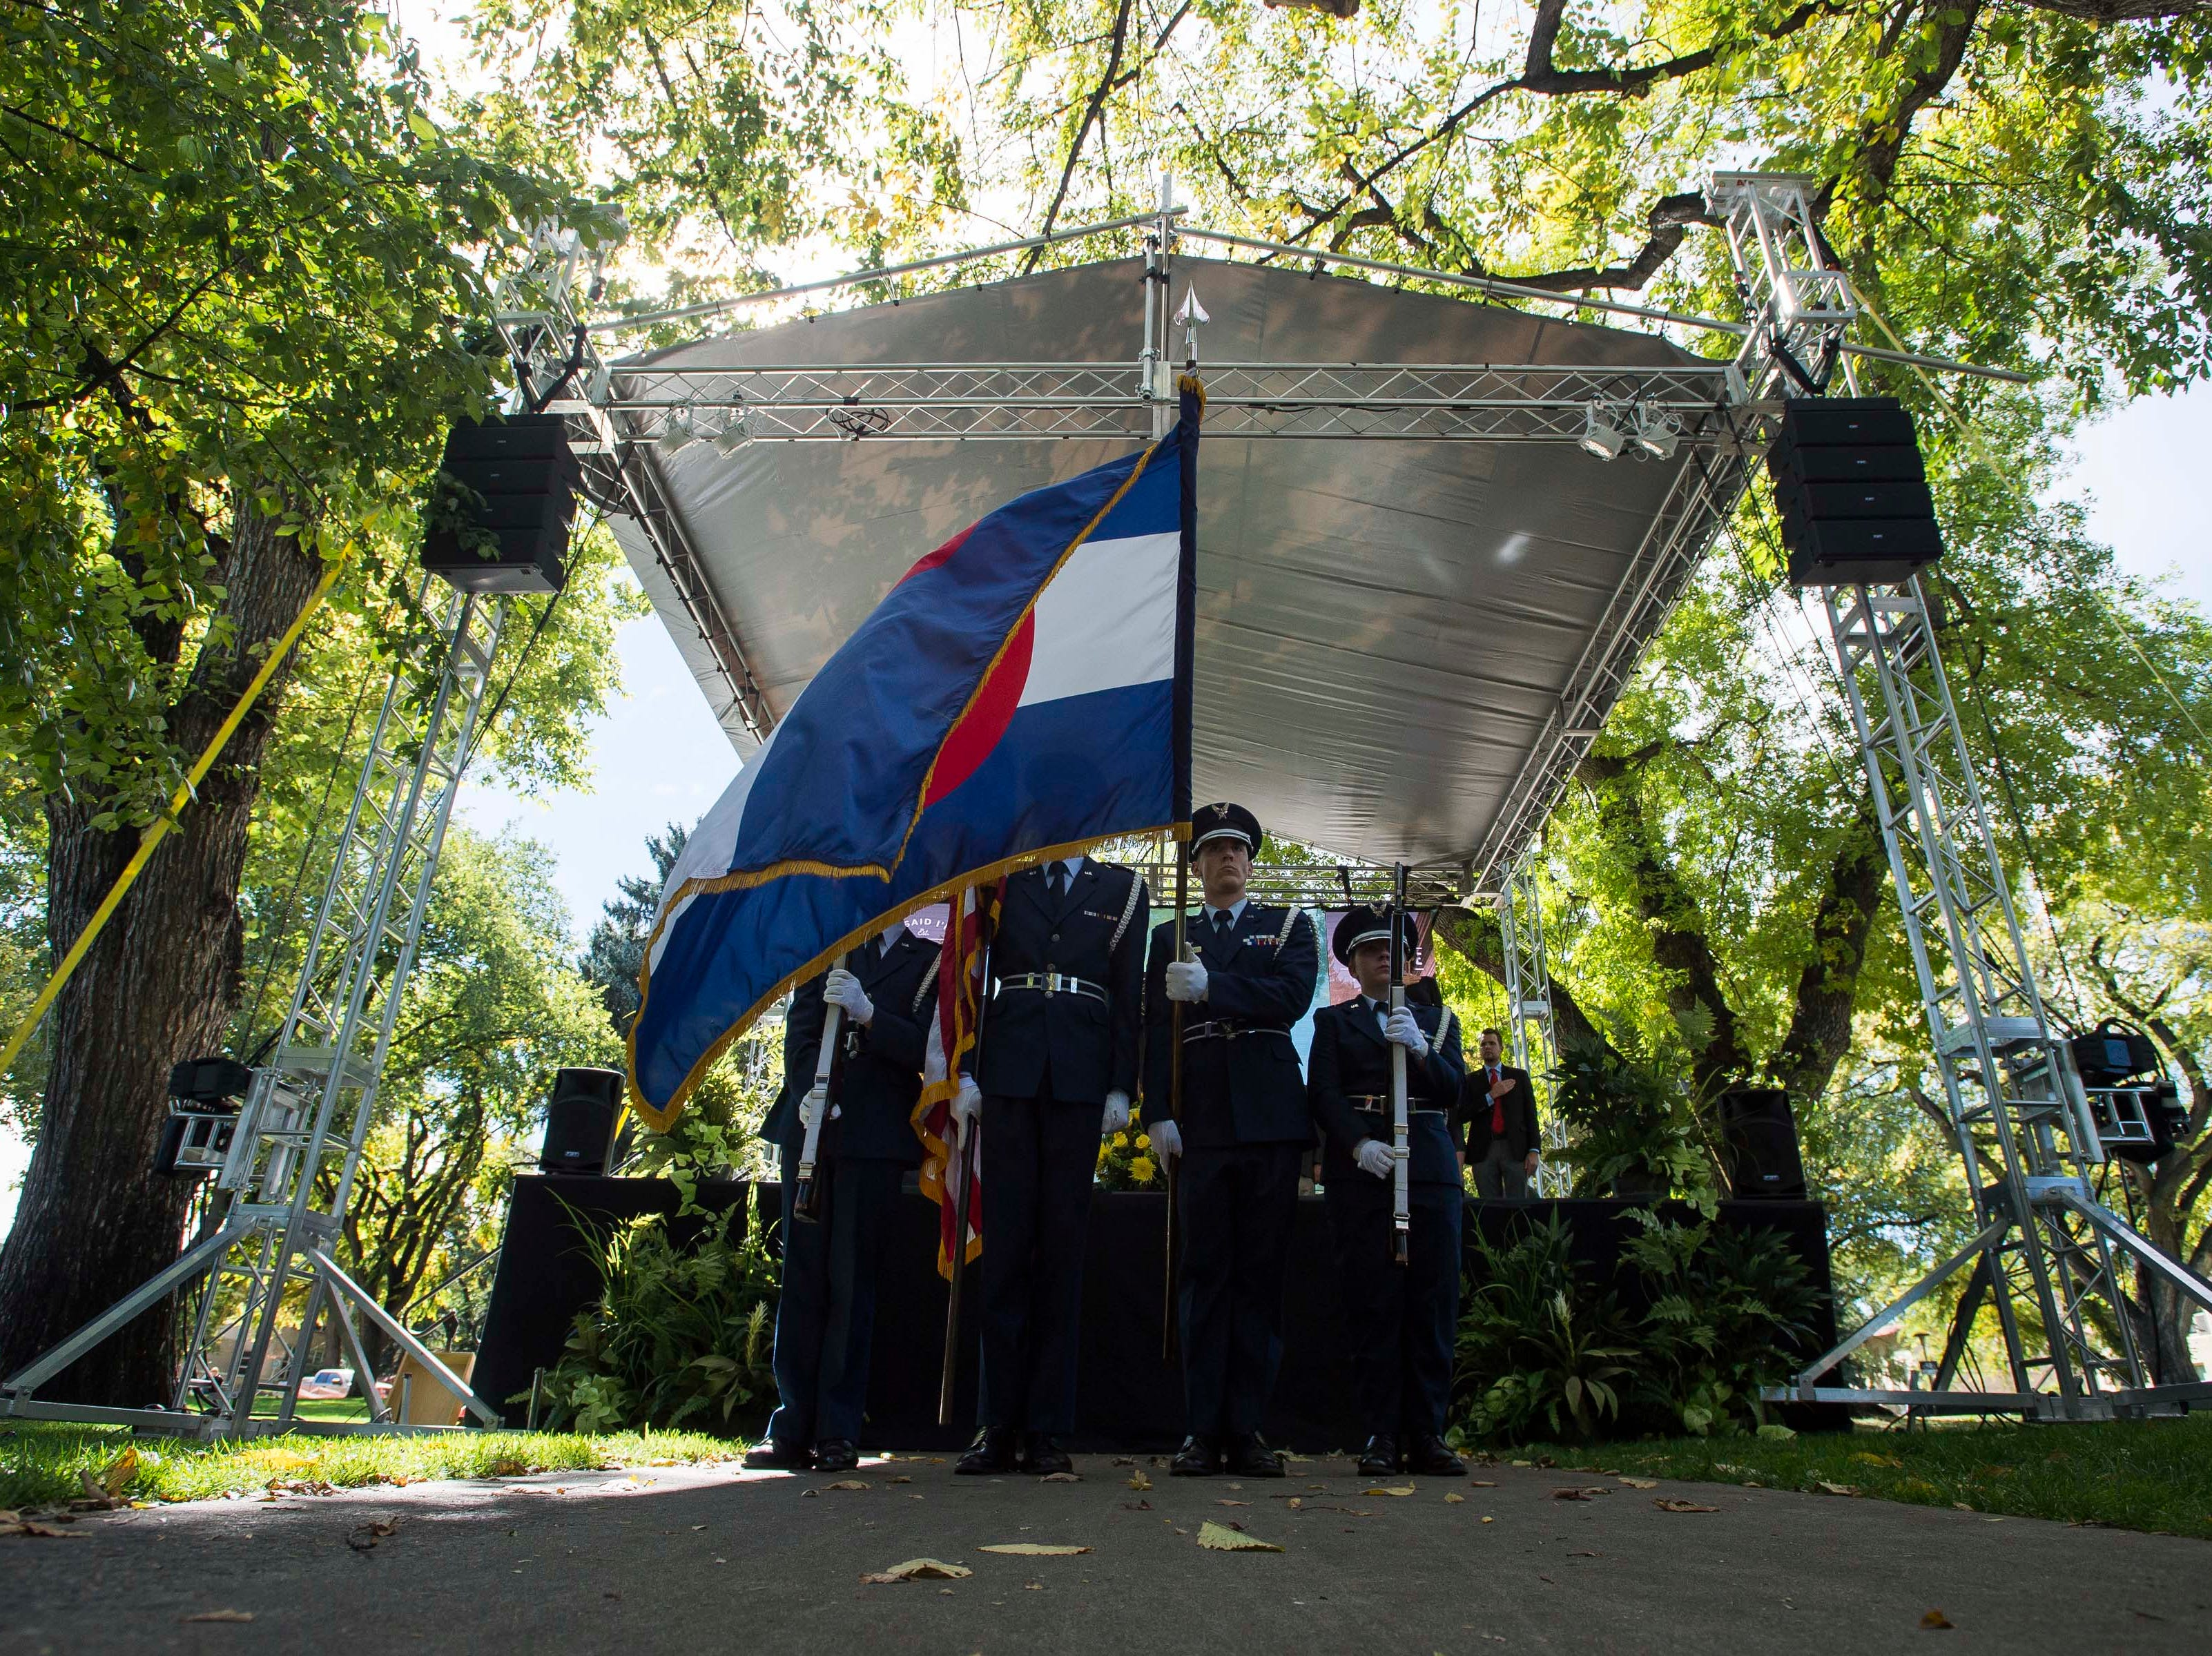 CSU color guards present the flags during the 2018 fall address on Wednesday, Oct. 3, 2018, at the Colorado State University campus in Fort Collins, Colo.